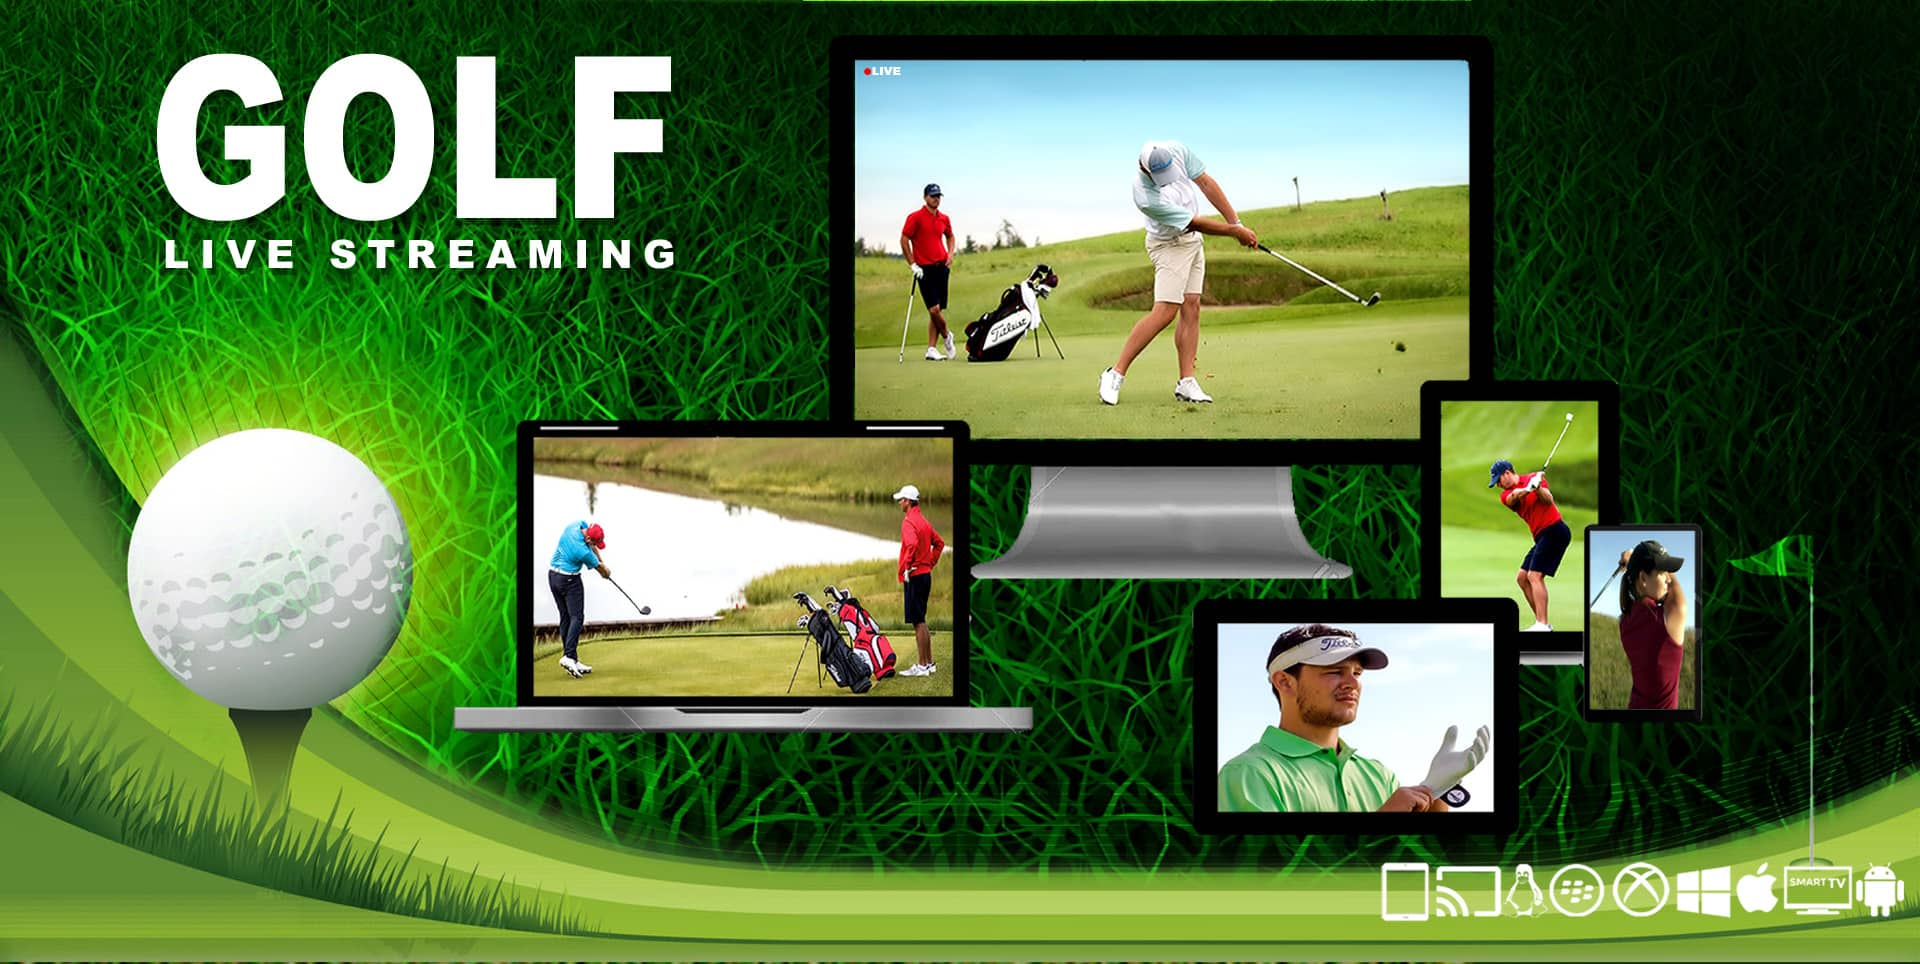 2016 Safeway Open Live Streaming